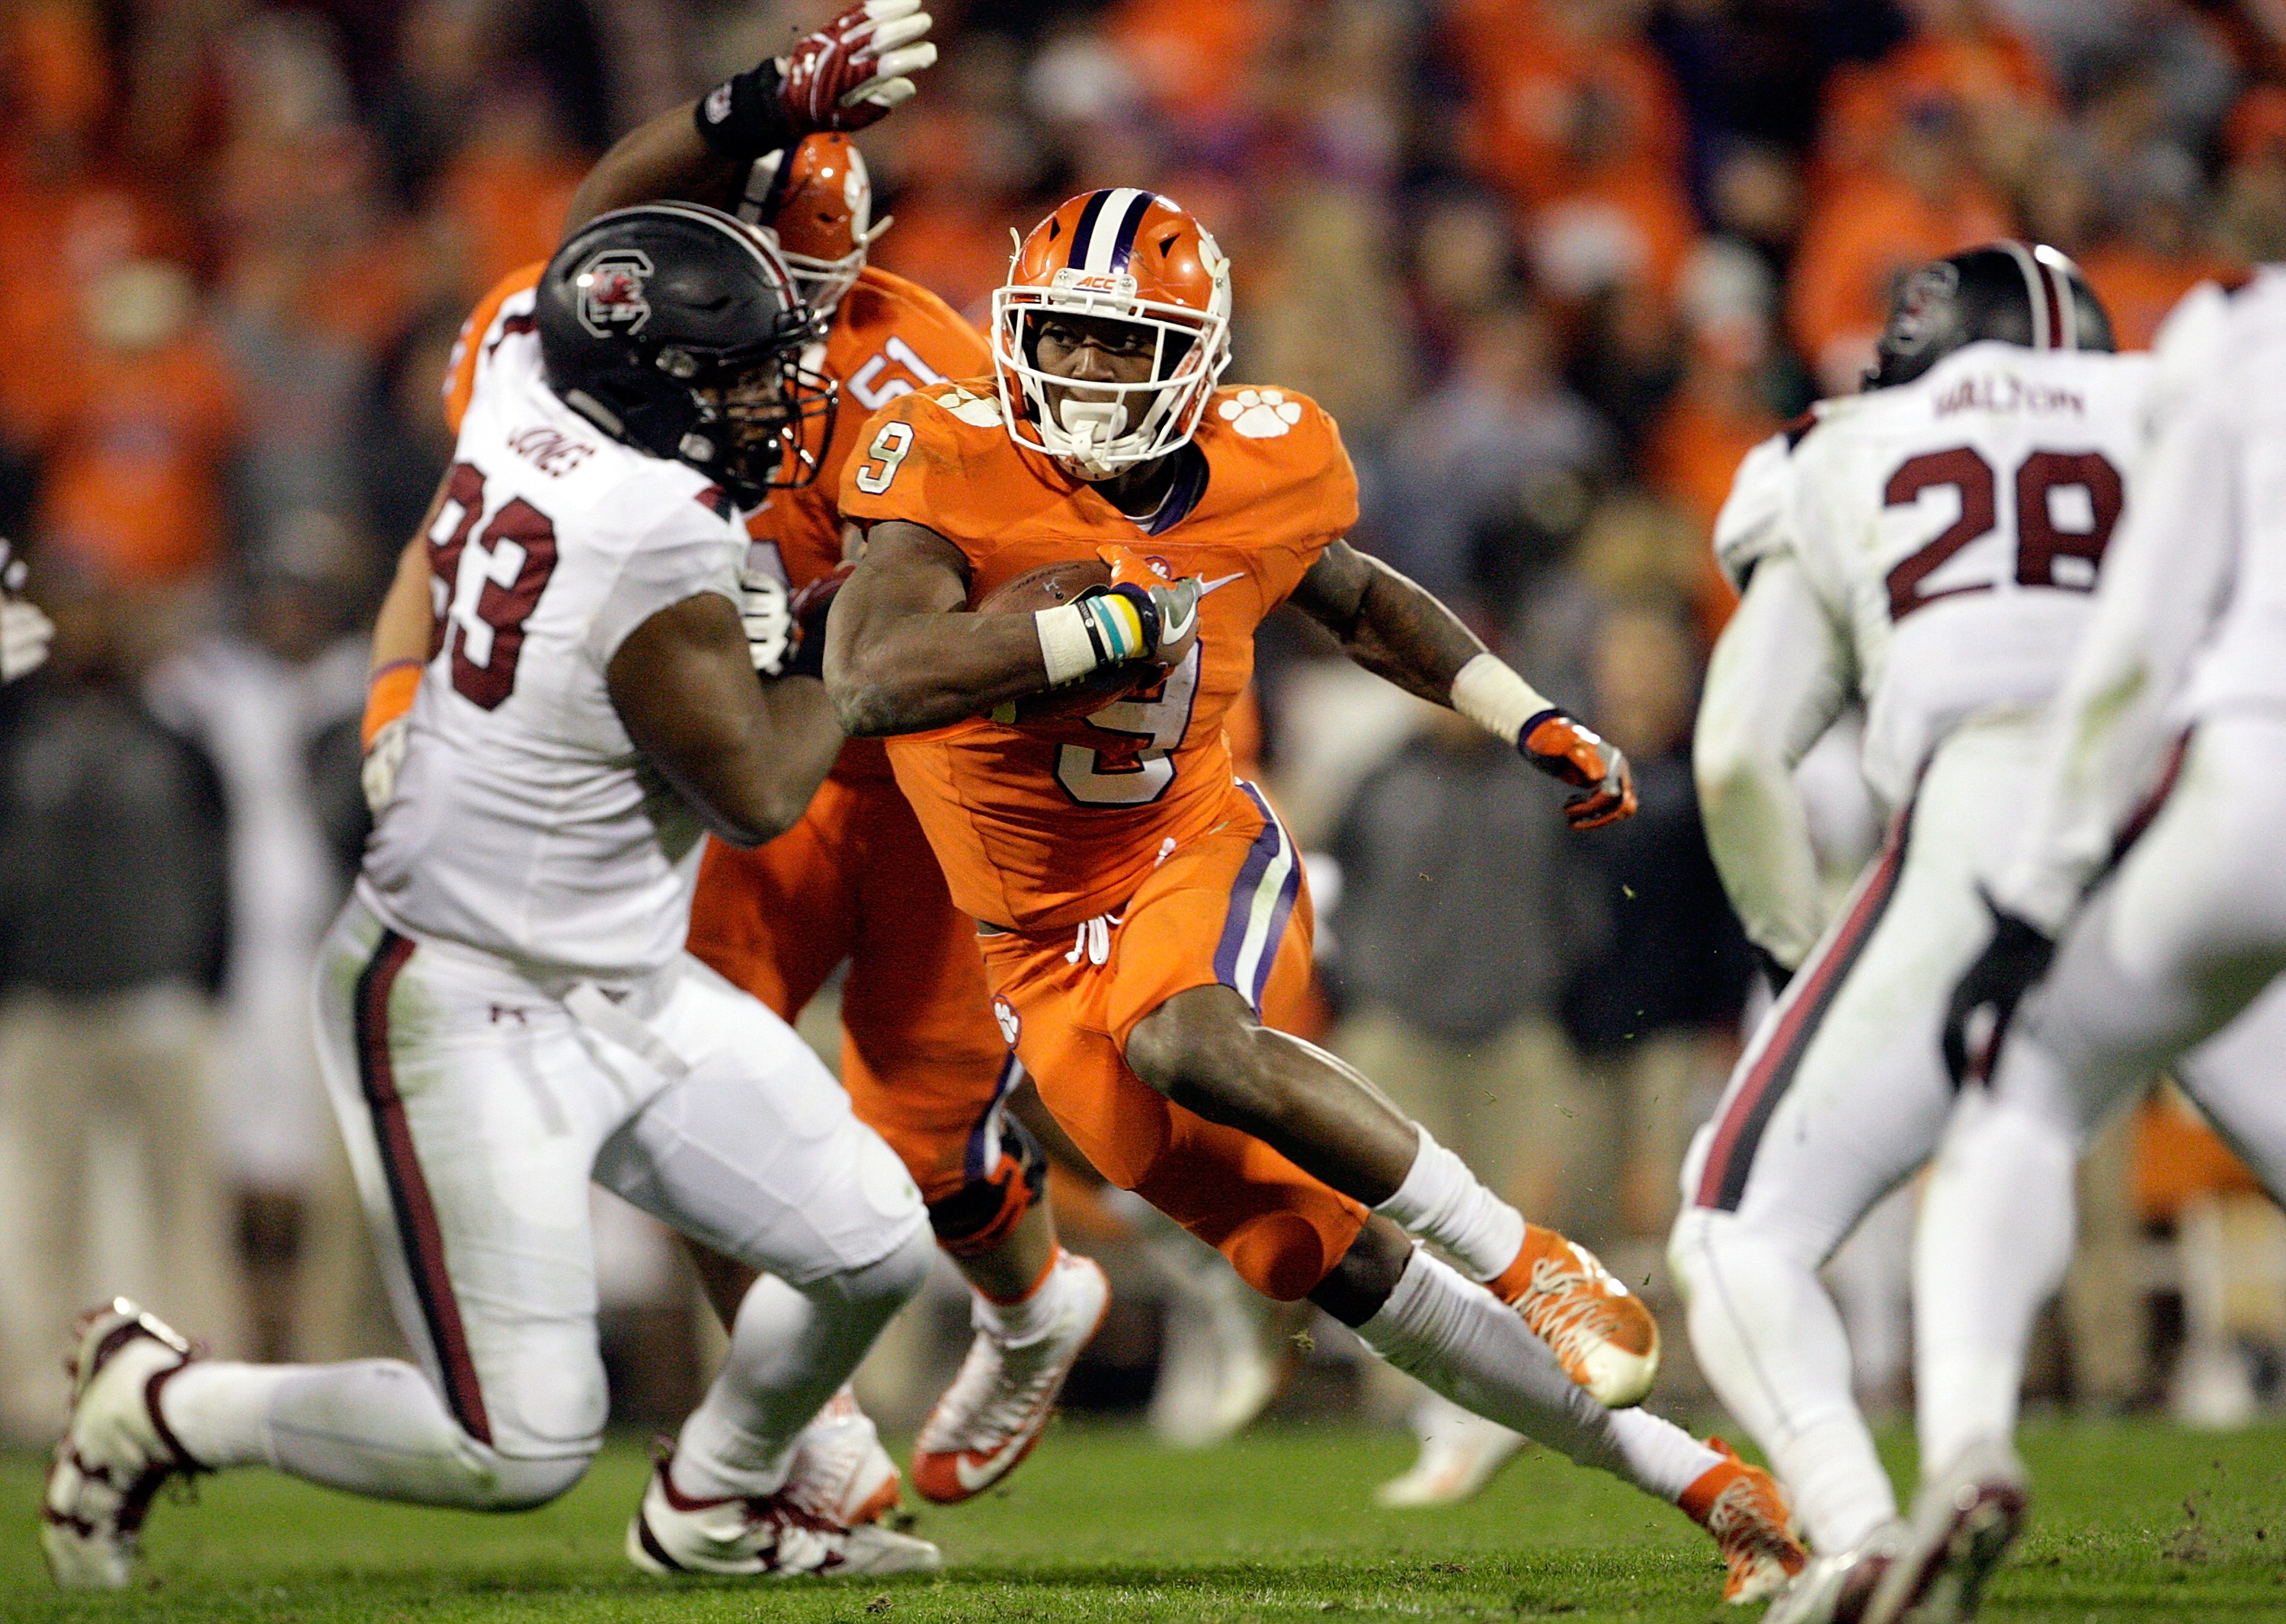 South Carolina Players Accuse Clemson Players of Calling ...